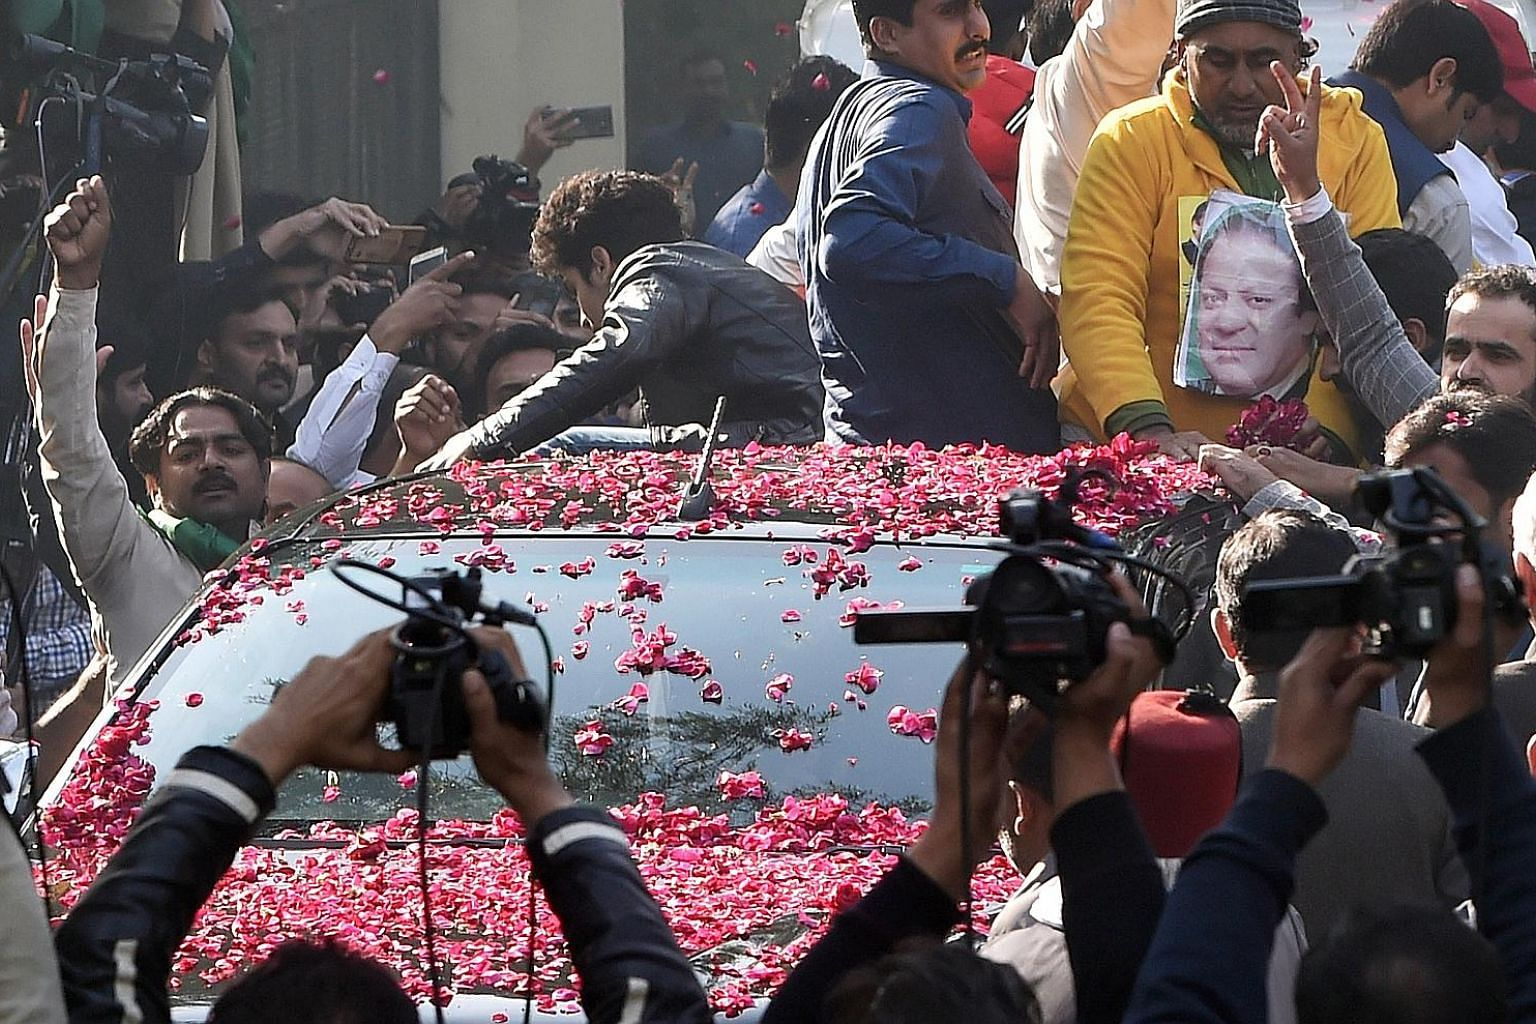 Supporters of Pakistan's former prime minister Nawaz Sharif surrounding his car in Lahore on Sunday. Sharif, who has been sentenced to seven years' jail for corruption, left the country yesterday to receive medical treatment in London, and was allowe